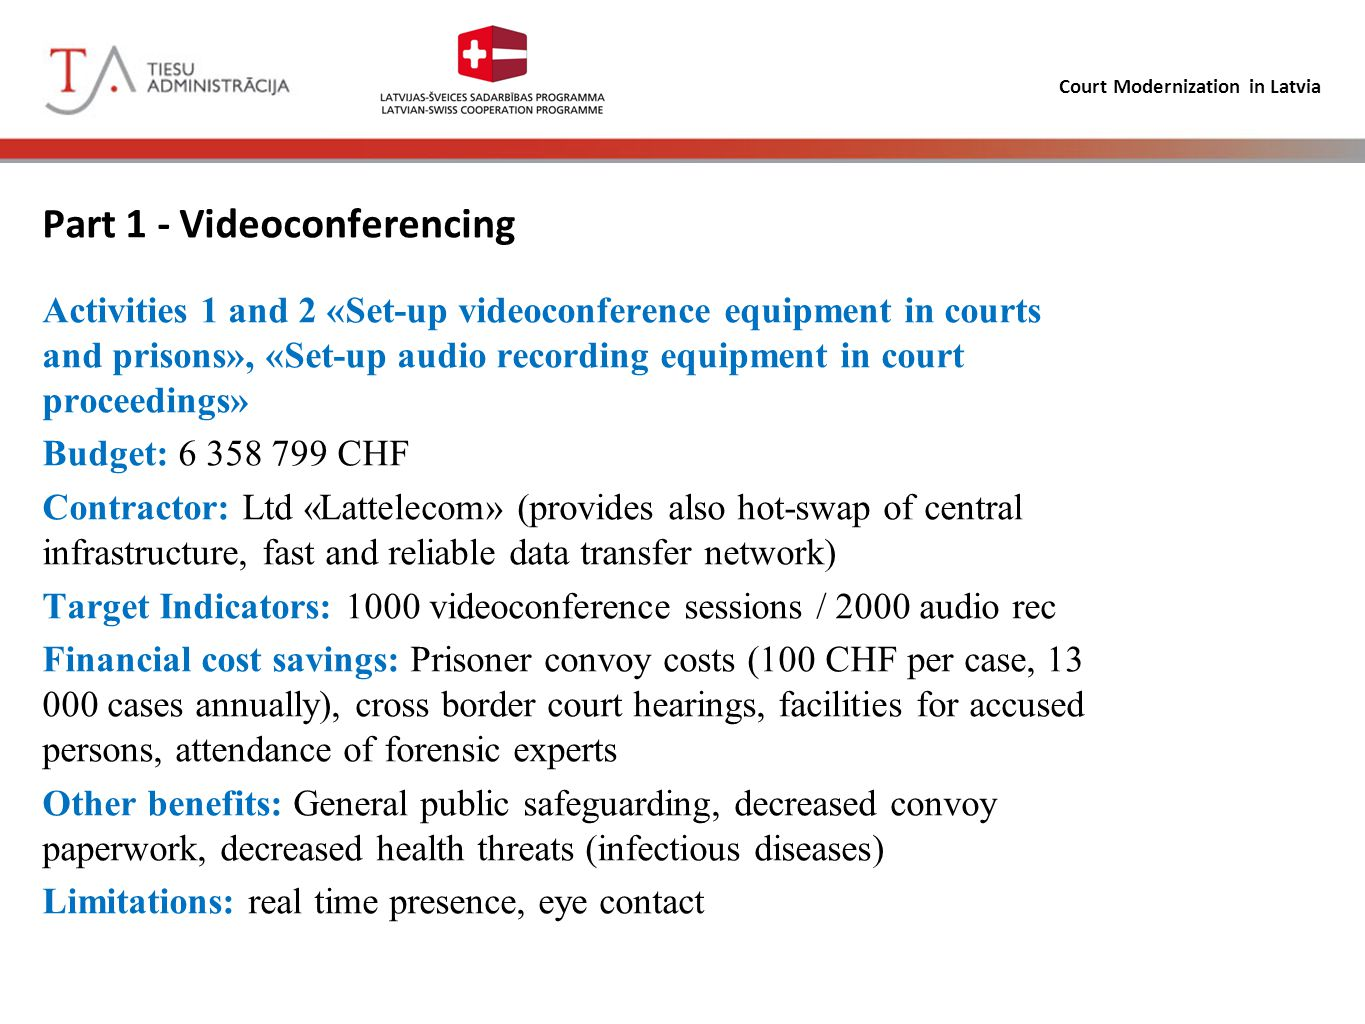 Court Modernization in Latvia Part 1 - Videoconferencing Activities 1 and 2 «Set-up videoconference equipment in courts and prisons», «Set-up audio recording equipment in court proceedings» Budget: 6 358 799 CHF Contractor: Ltd «Lattelecom» (provides also hot-swap of central infrastructure, fast and reliable data transfer network) Target Indicators: 1000 videoconference sessions / 2000 audio rec Financial cost savings: Prisoner convoy costs (100 CHF per case, 13 000 cases annually), cross border court hearings, facilities for accused persons, attendance of forensic experts Other benefits: General public safeguarding, decreased convoy paperwork, decreased health threats (infectious diseases) Limitations: real time presence, eye contact